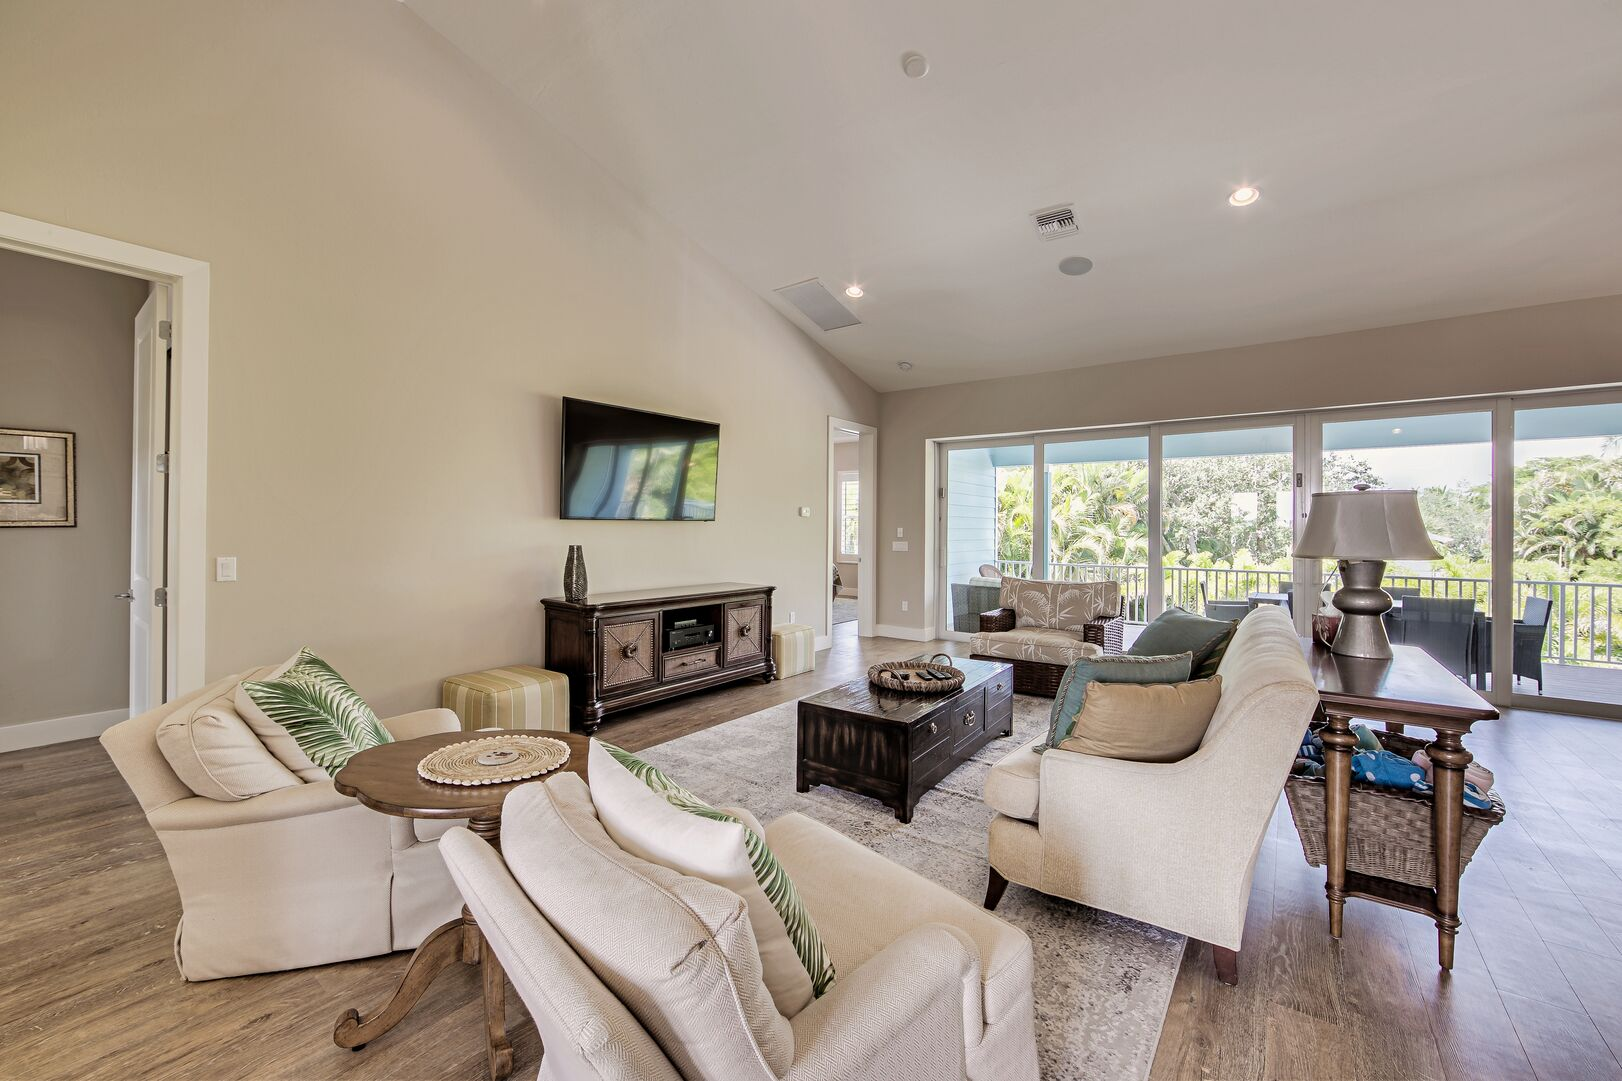 Living room with a t v and seating